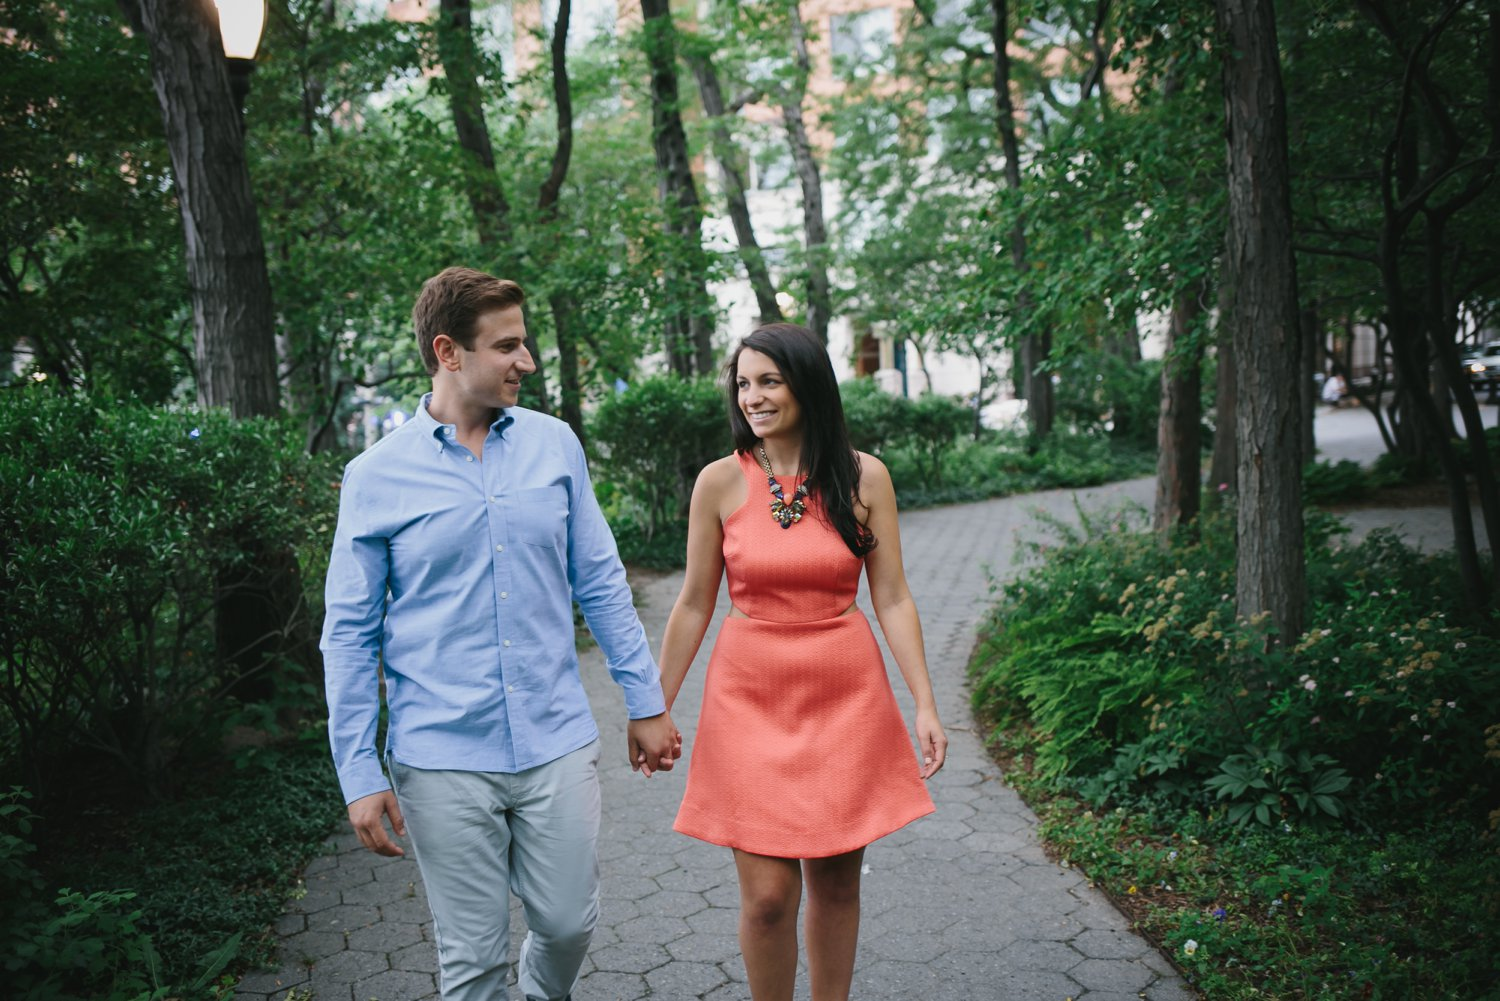 92NYC-NJ-ENGAGEMENT-PHOTOGRAPHY-BY-INTOTHESTORY-MOO-JAE.JPG